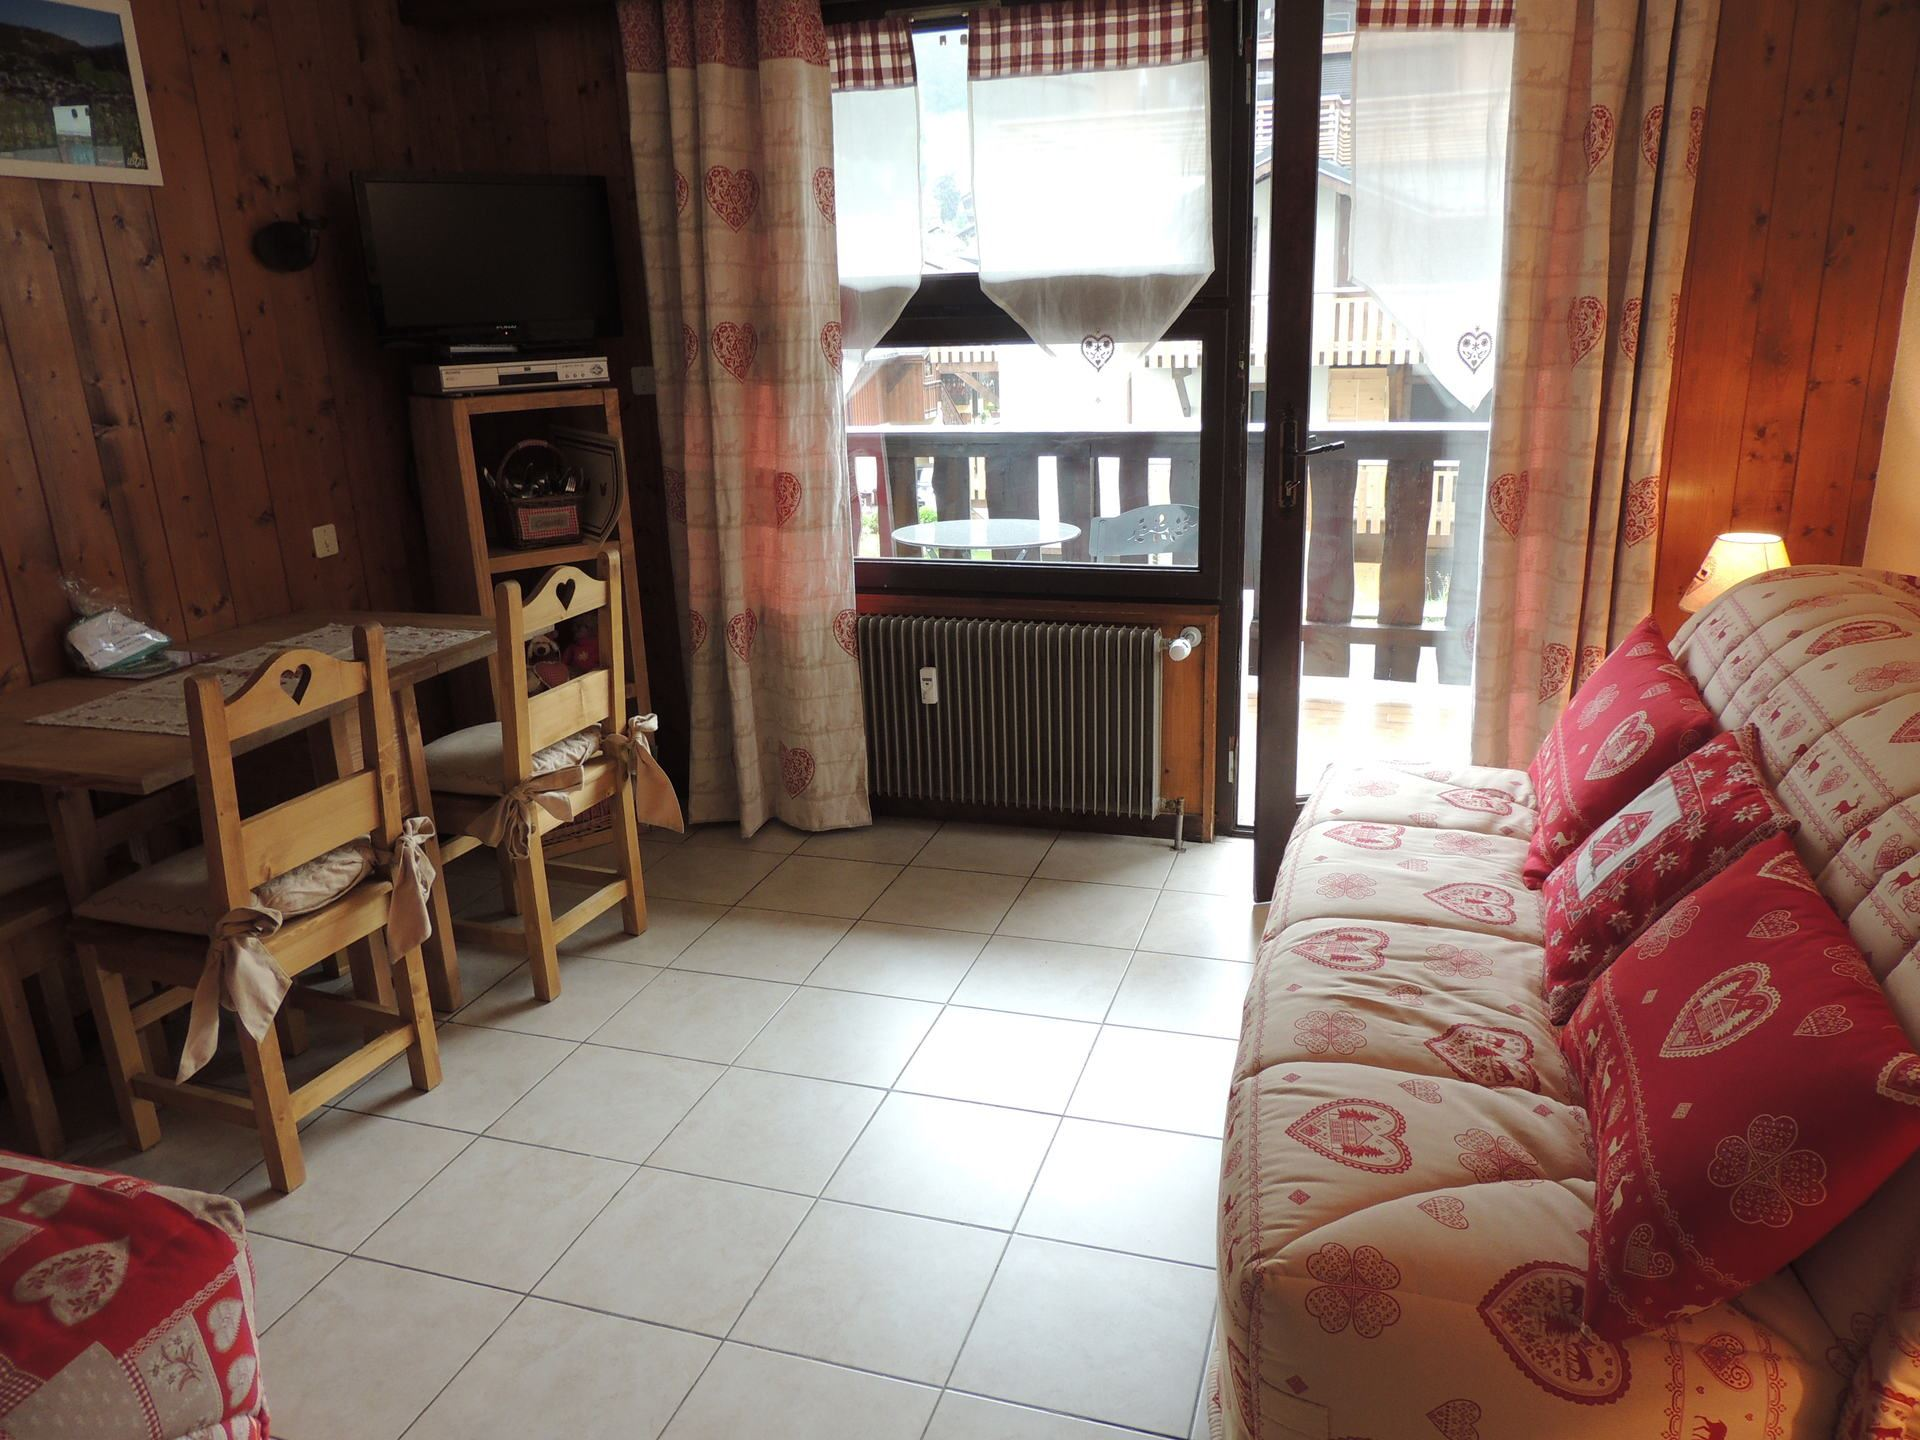 Ranfolly - IS RANF2 - 1 room** - 3 people - 20m²